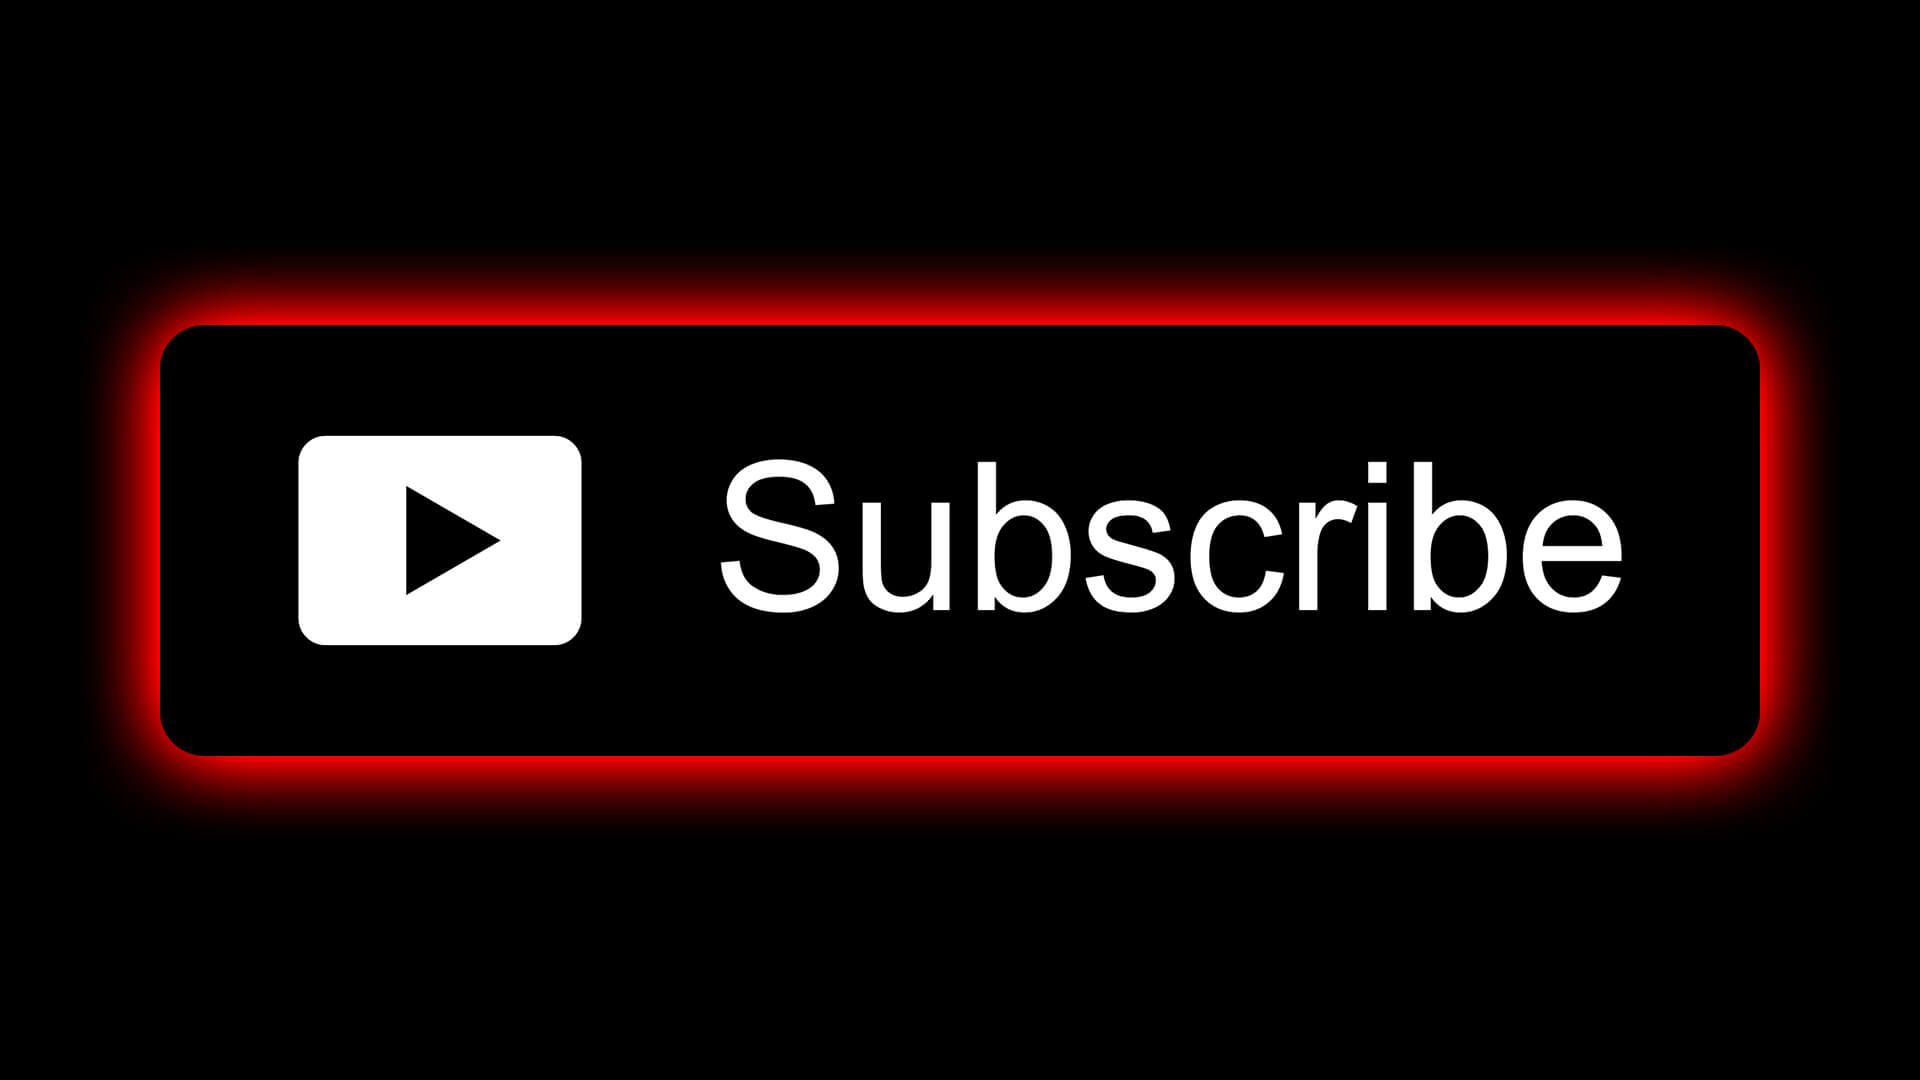 Youtube Subscribe Button Free Download 1 Gambar Bergerak